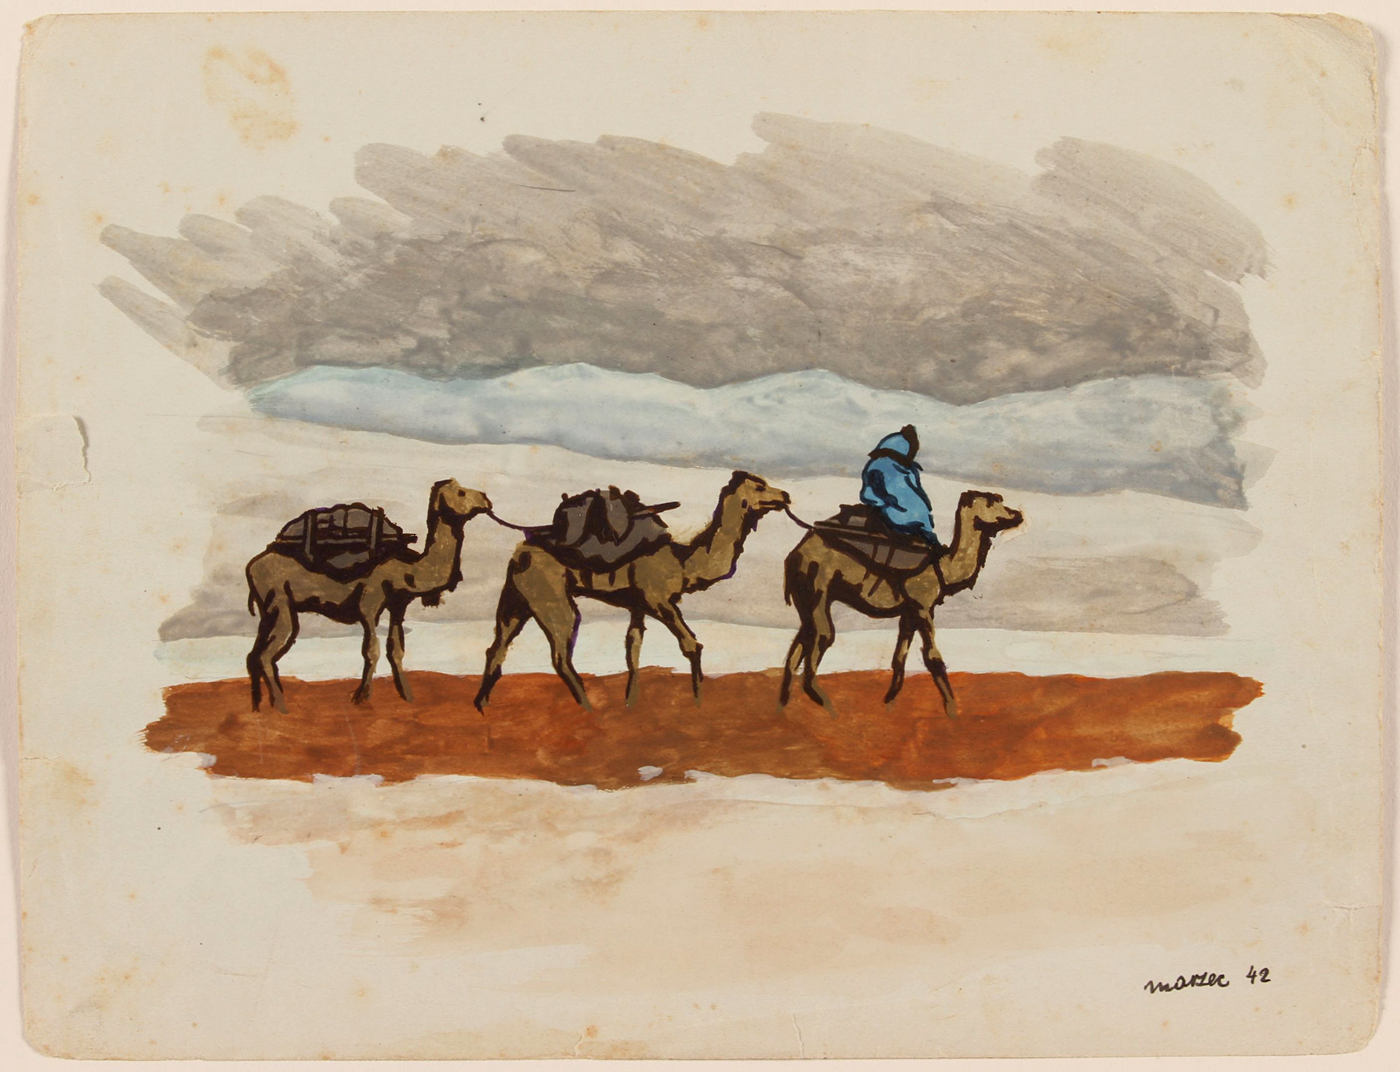 Rider and Three Camels, Kyrgyzstan, 1942